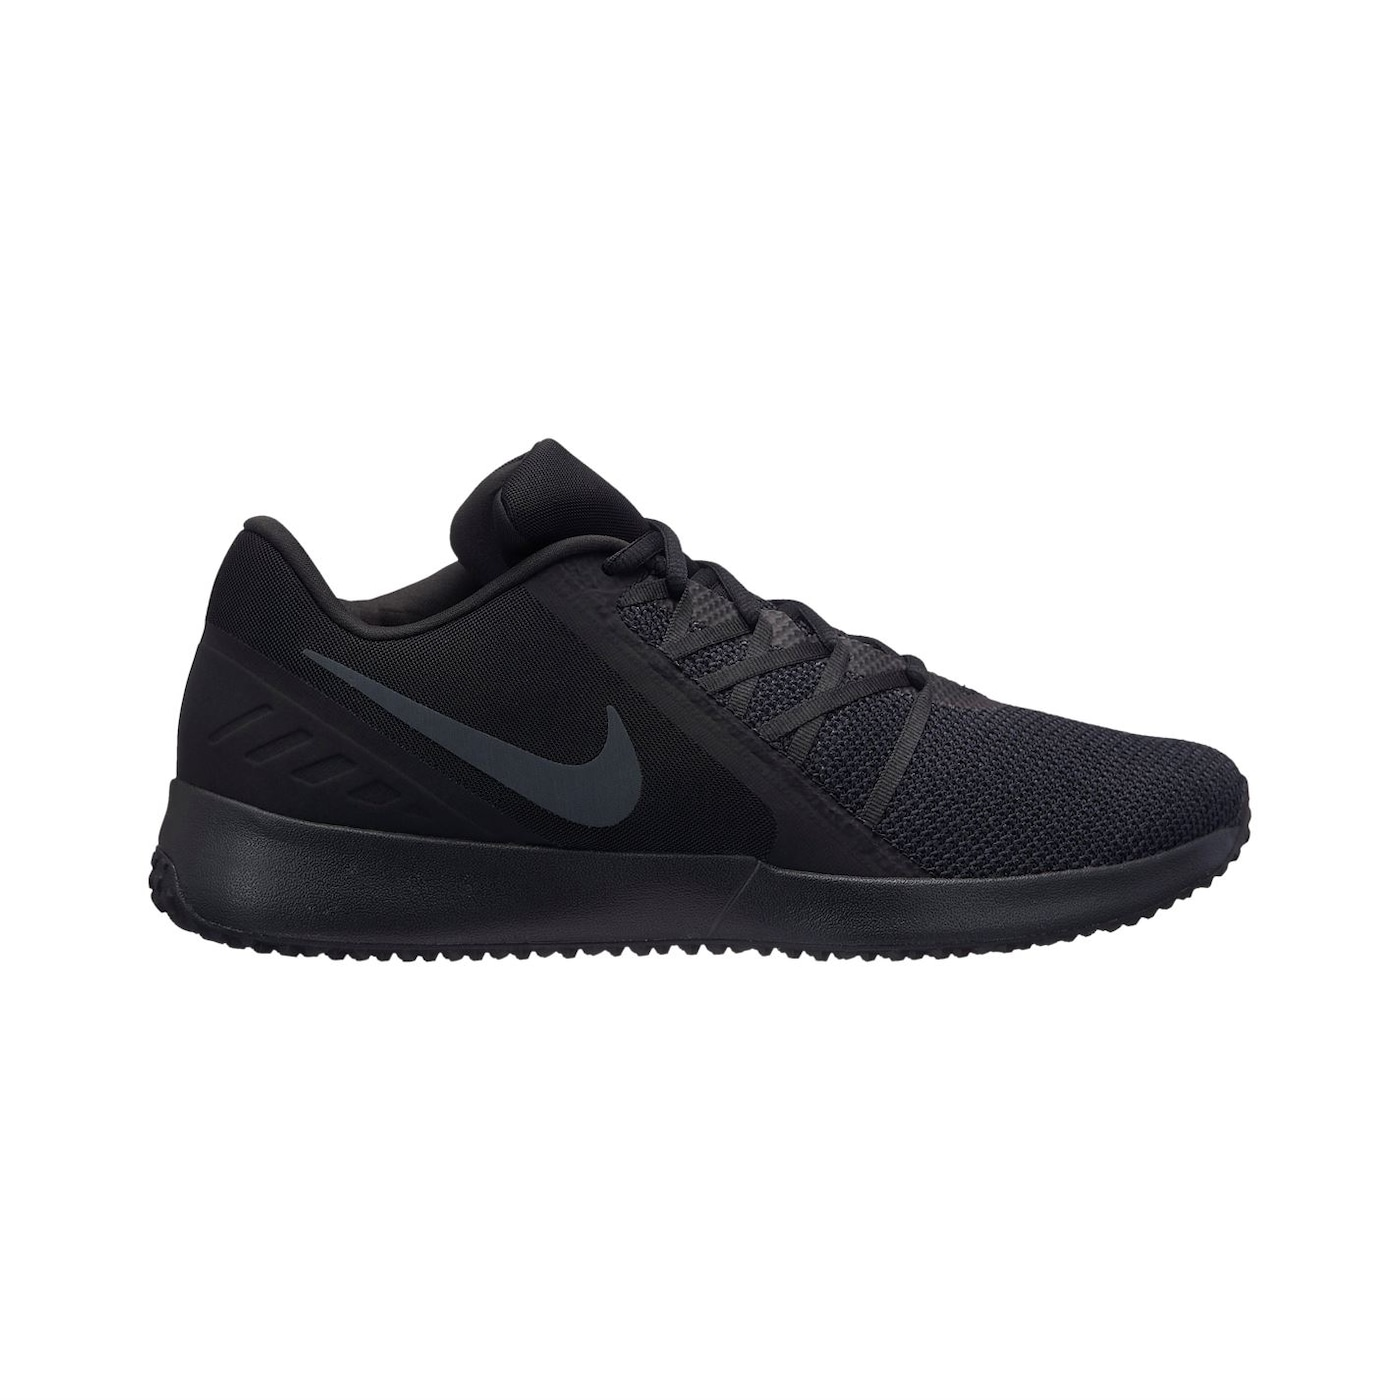 boty Nike Air Toukol III pánske Training Shoes